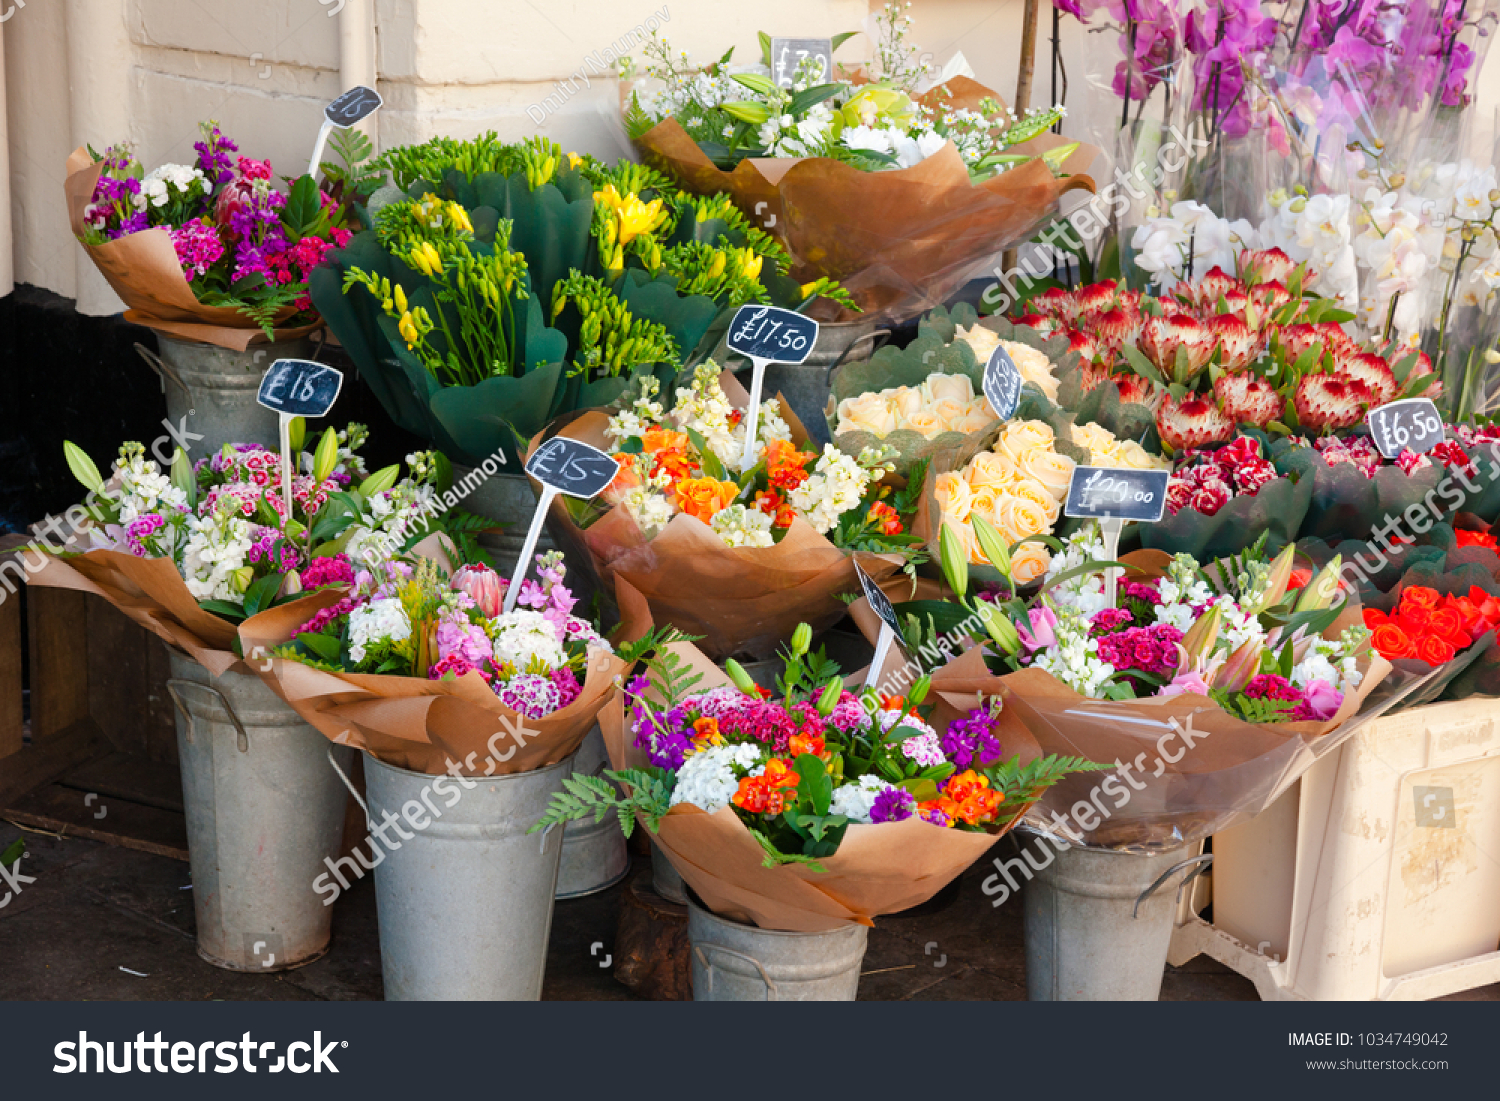 Various flower bouquets baskets price tags stock photo edit now various flower bouquets in baskets with price tags for sale at a street market in england izmirmasajfo